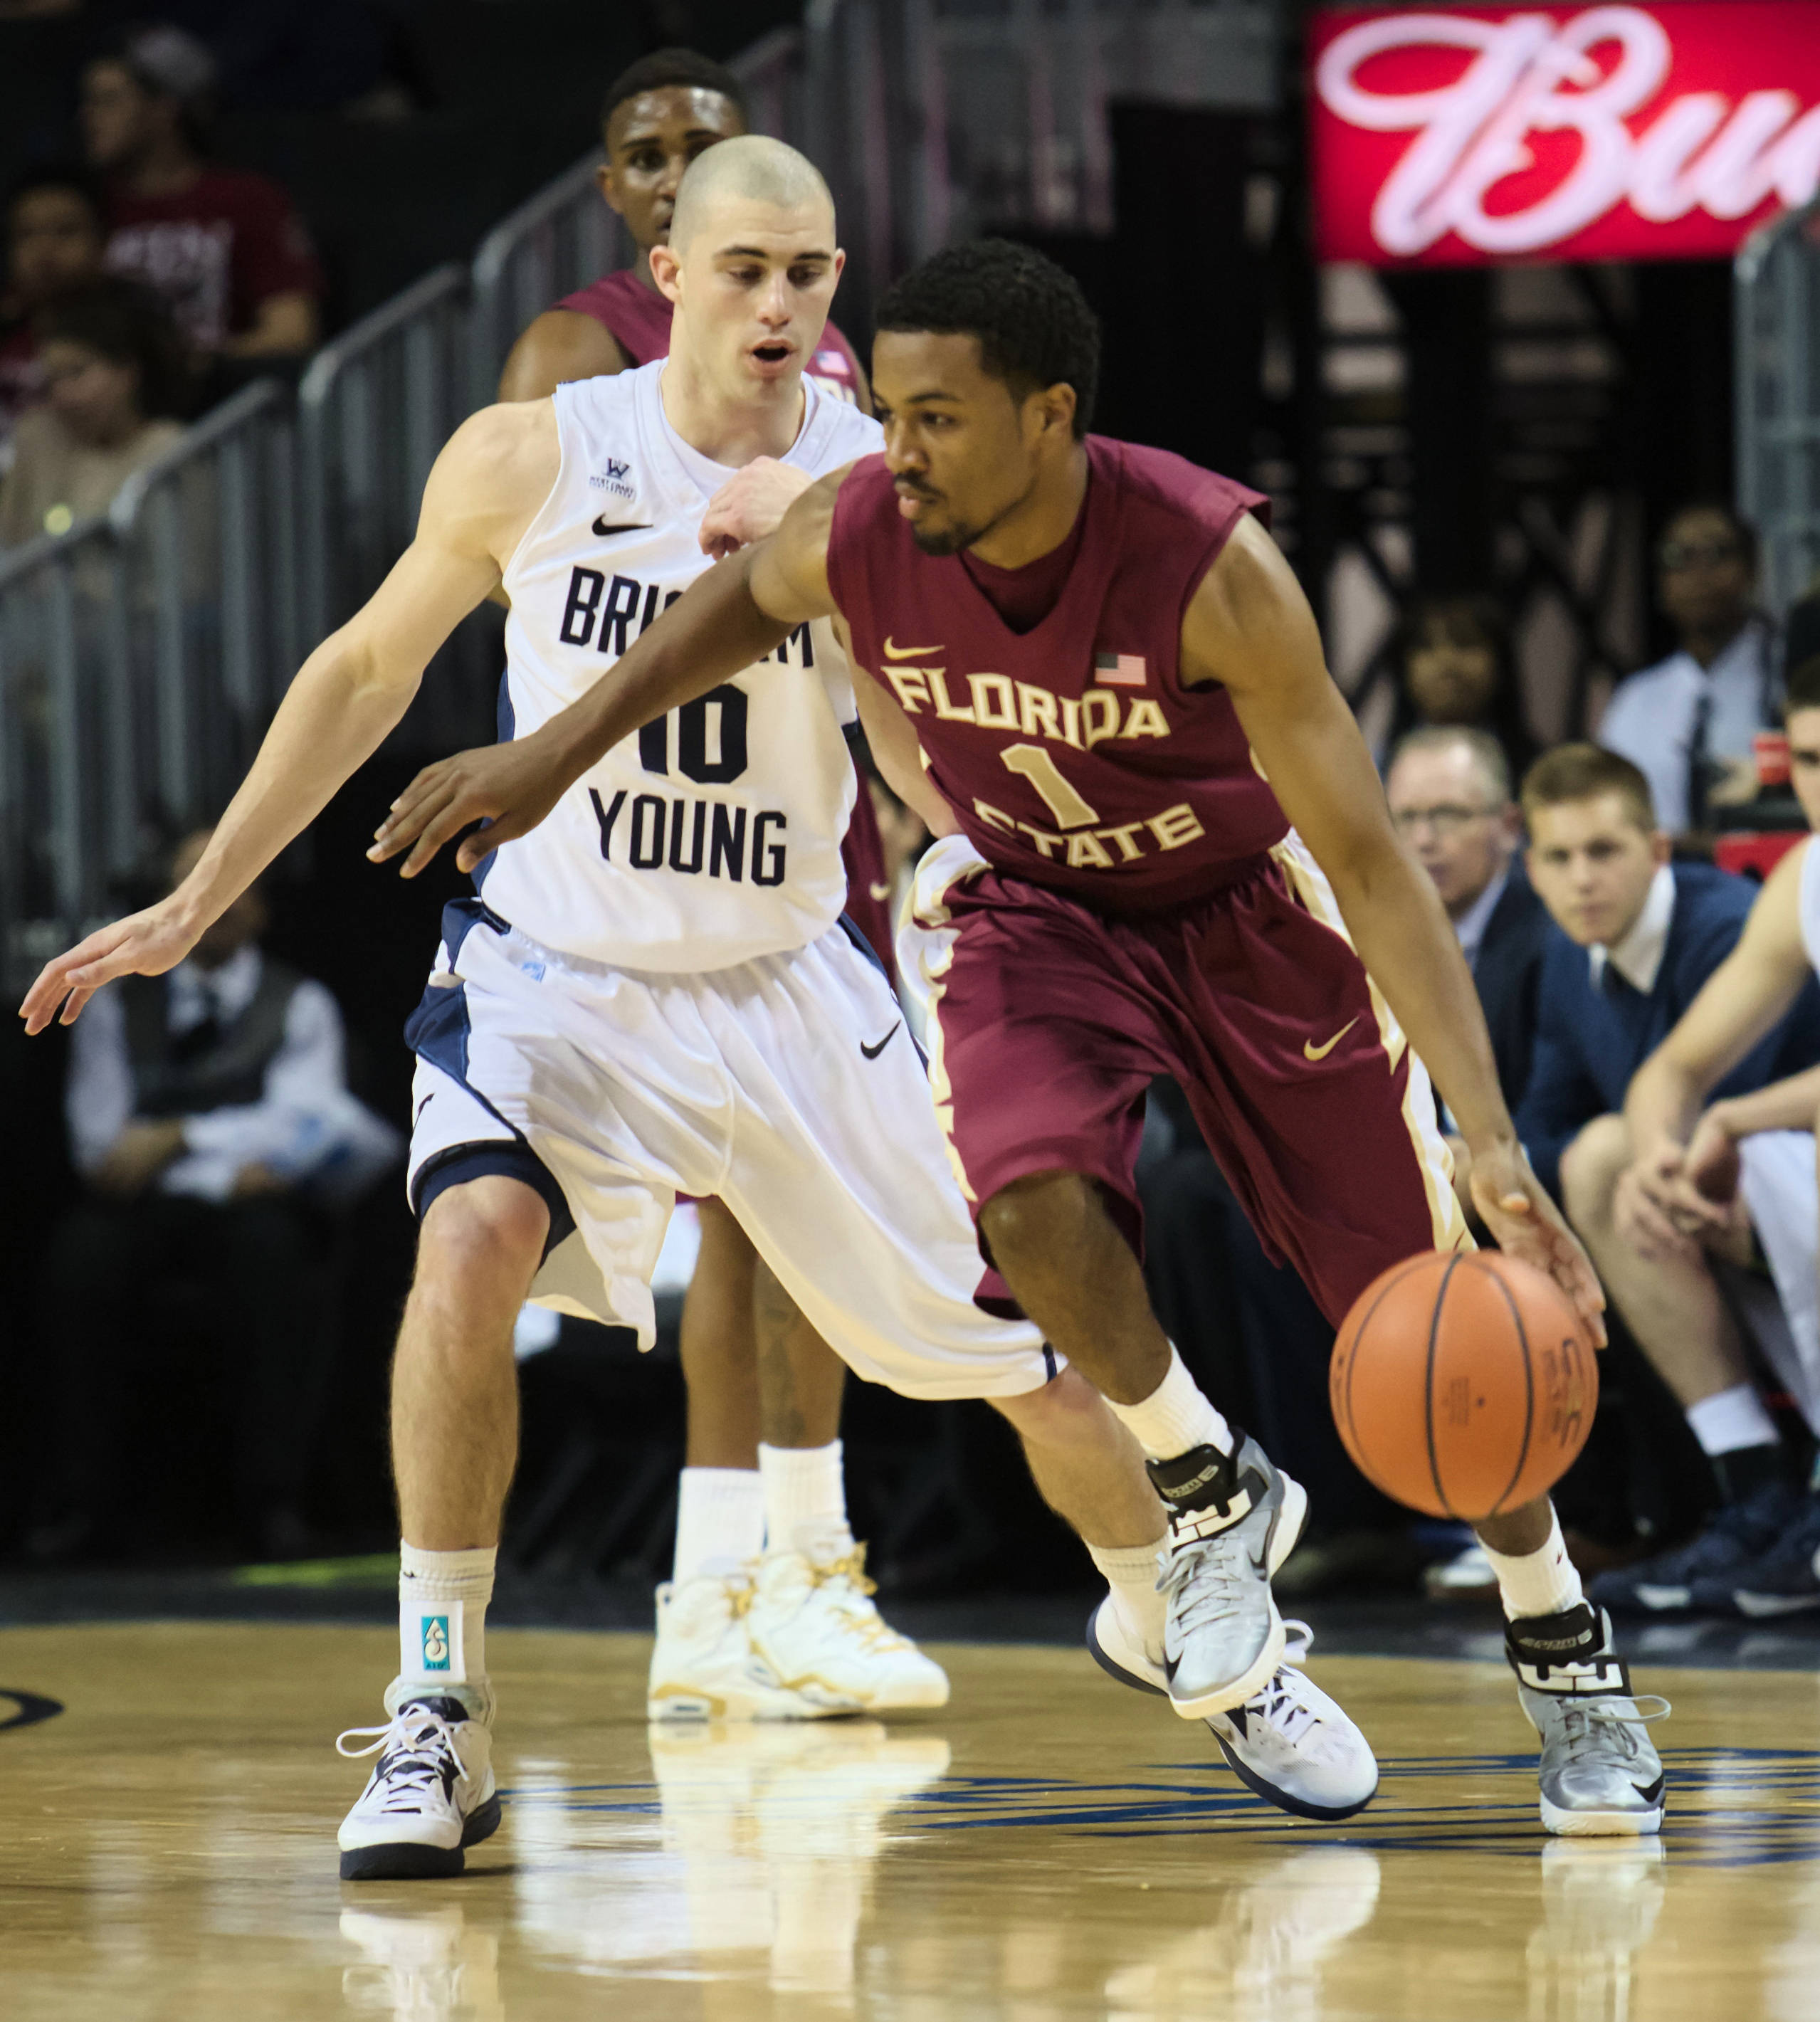 Devon Bookert (1), FSU vs BYU, 11/16/12. (Photo by Steve Musco)